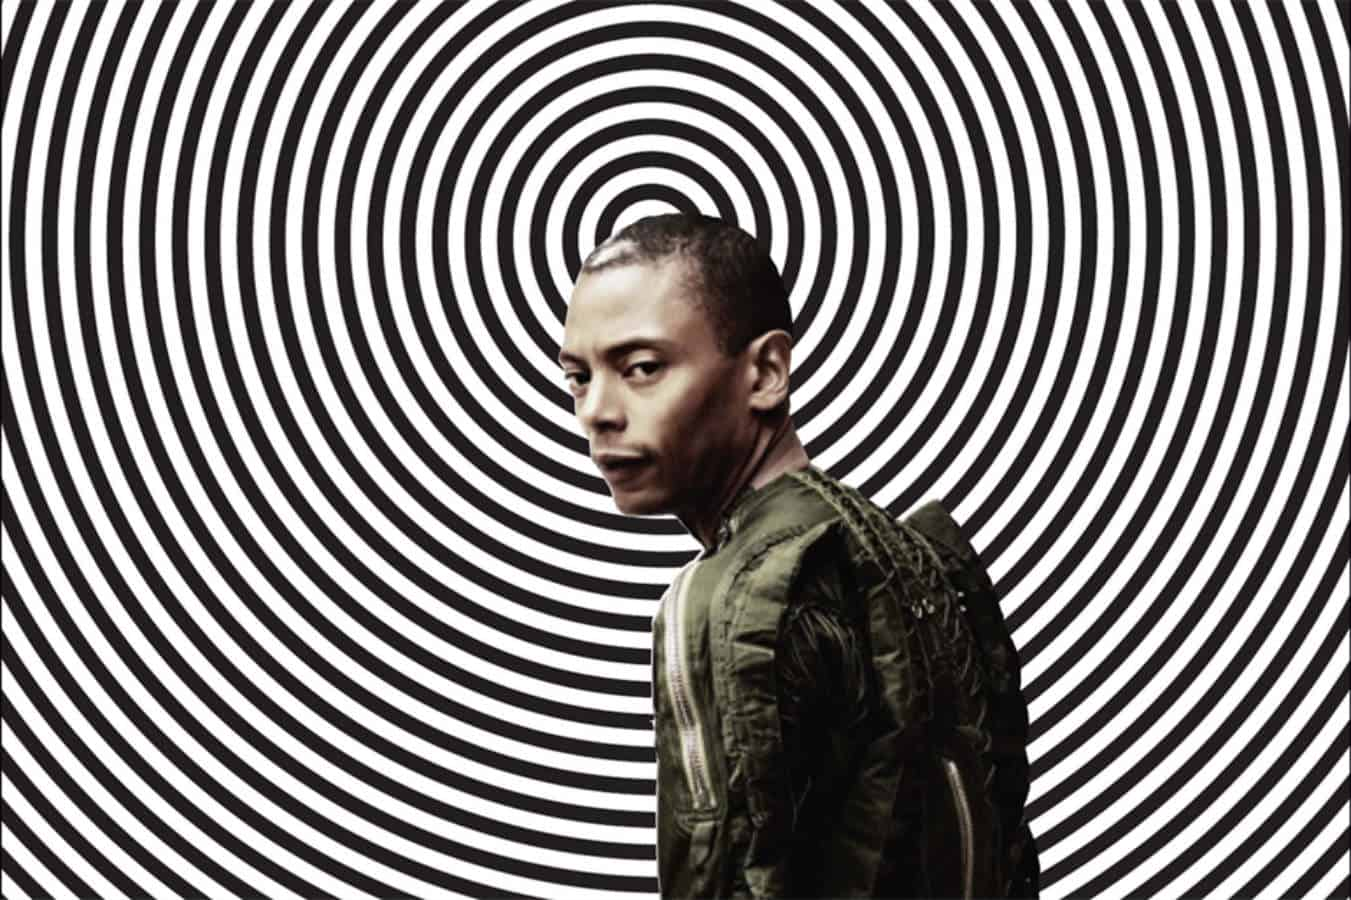 Jeff Mills Teams Up with NASA and NTS on Radio Show, The Outer Limits